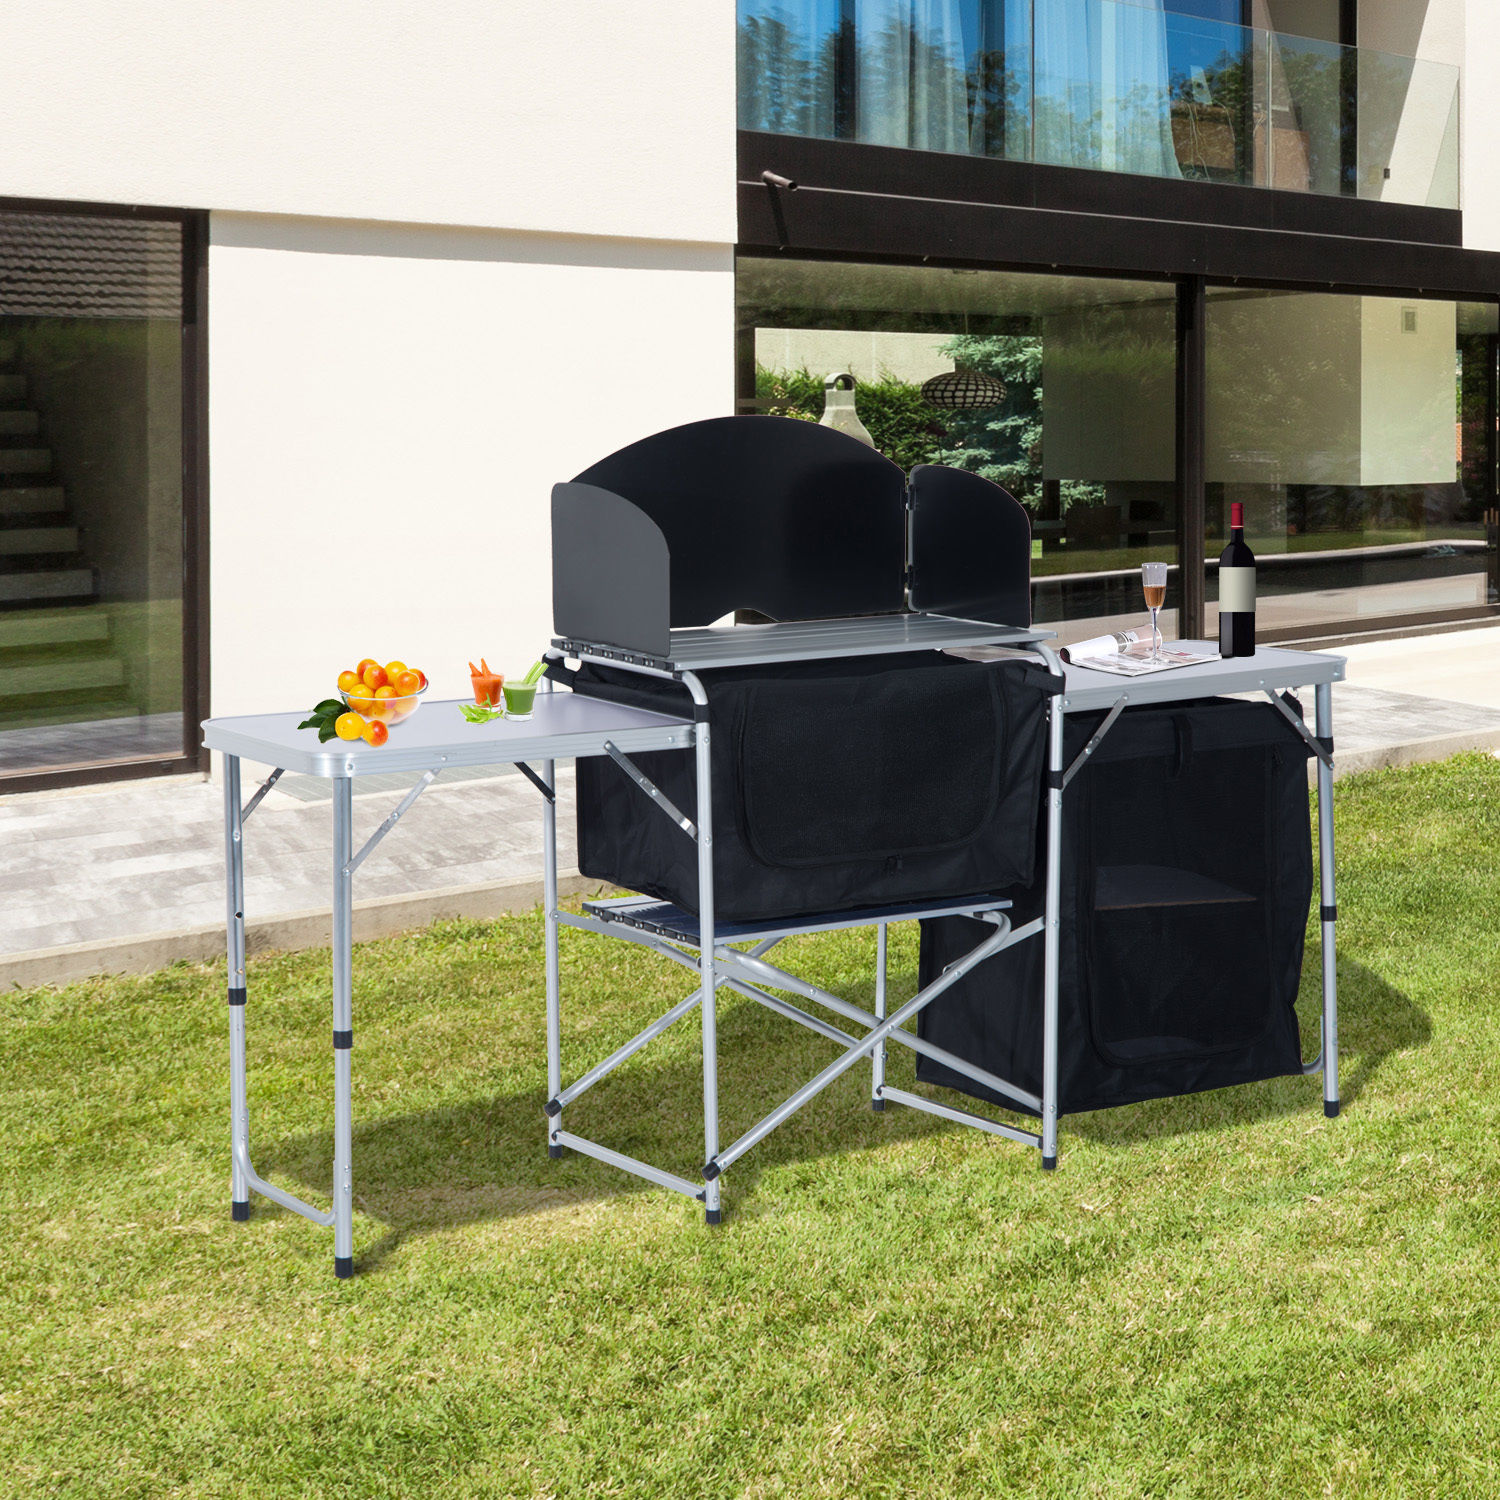 Camping Kitchen Picnic Table Cabinet Folding Cooking